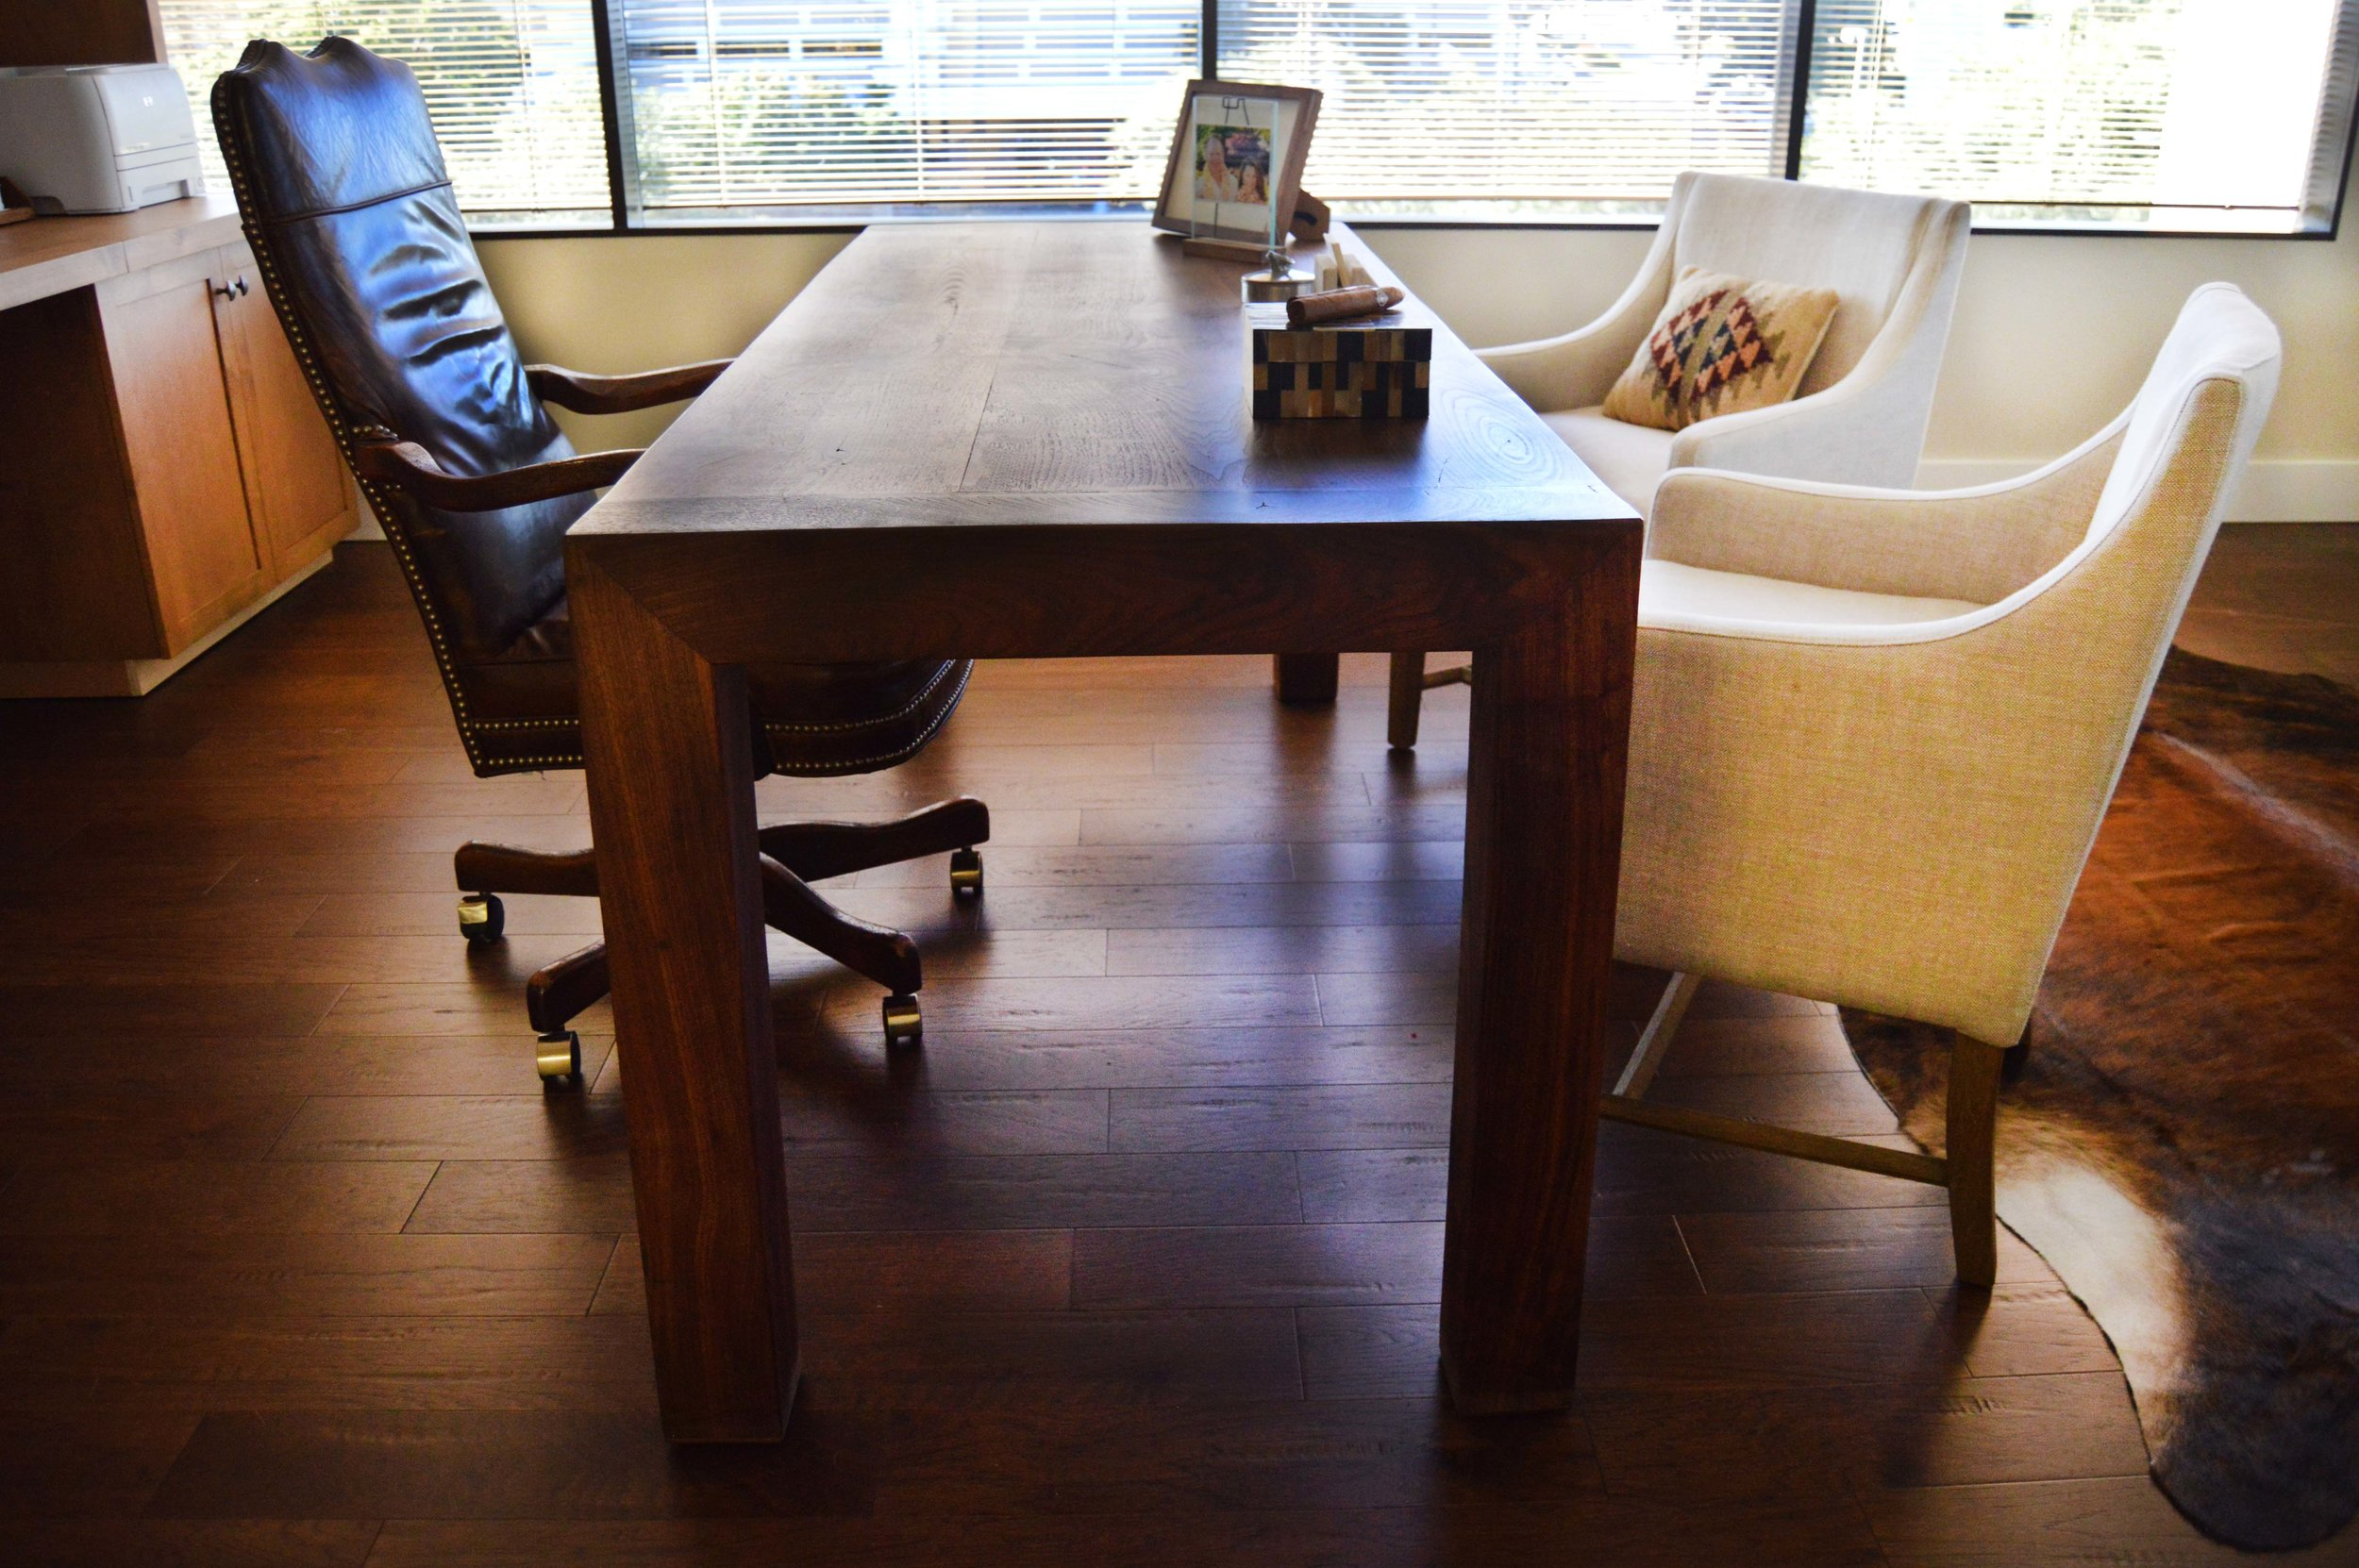 Wood Desk with Accent Chairs - Abode Interior Design